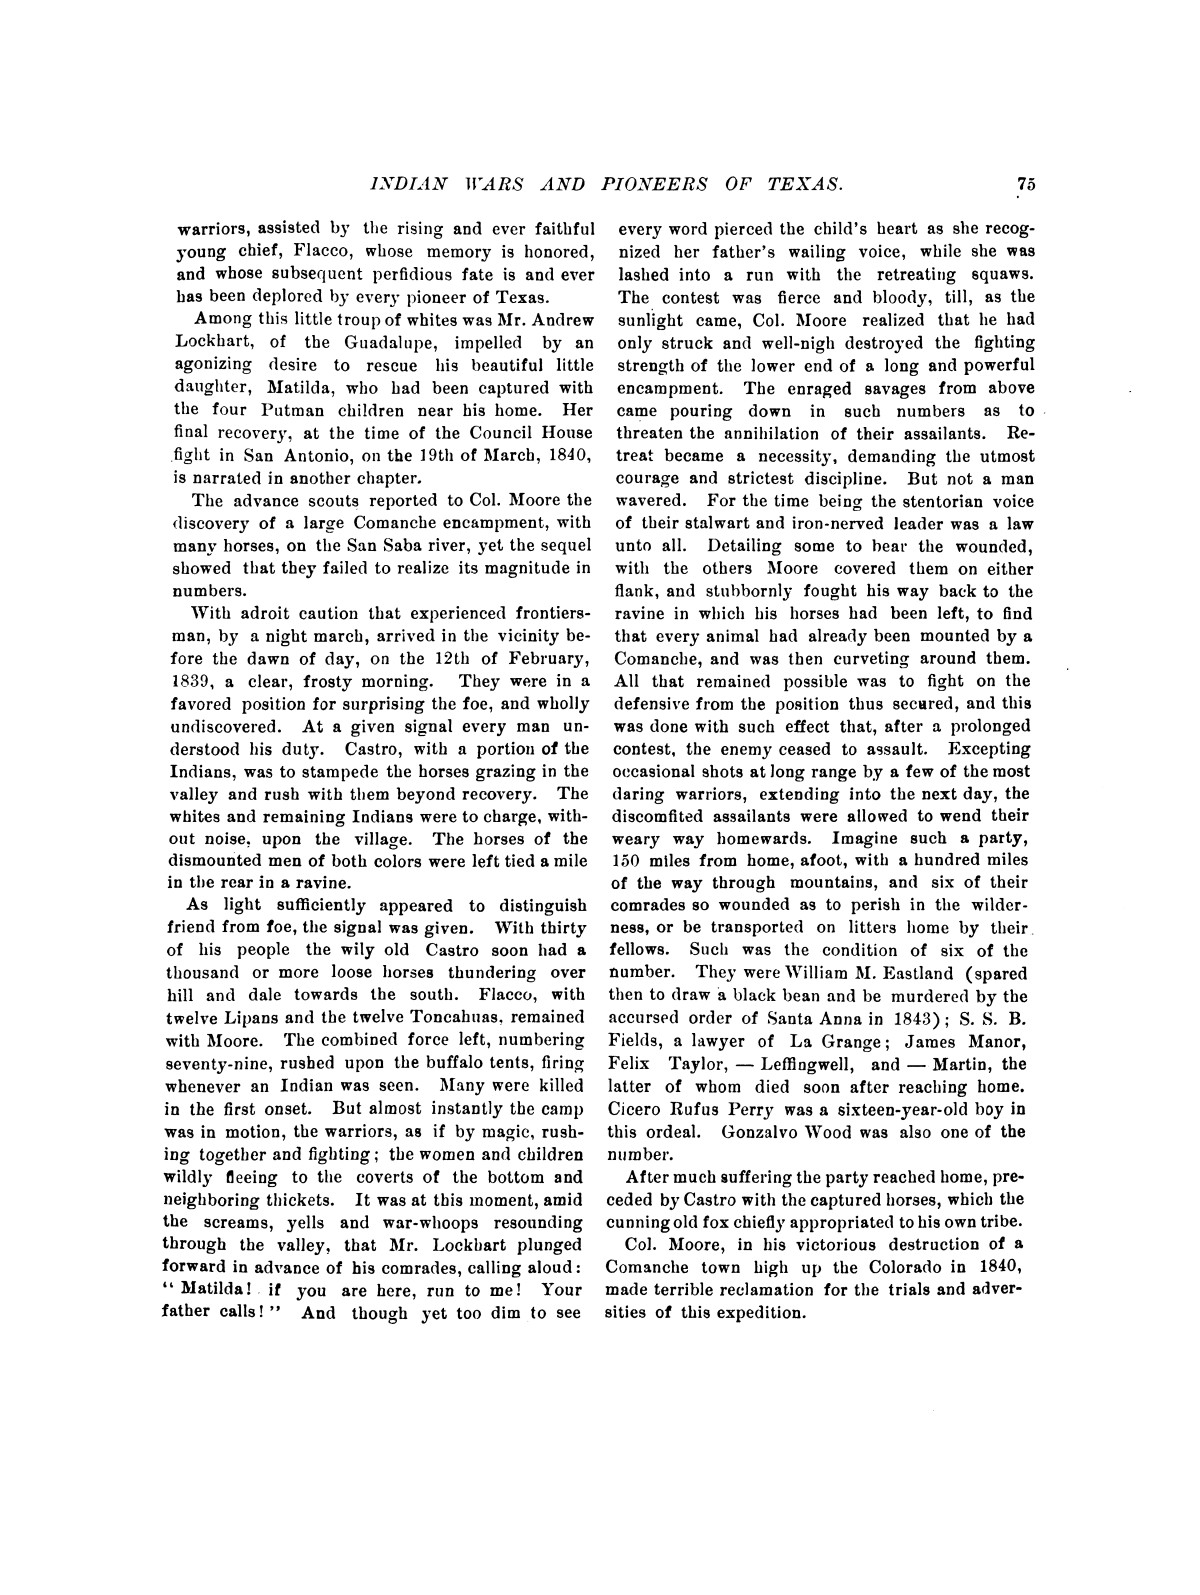 Indian wars and pioneers of Texas / by John Henry Brown.                                                                                                      [Sequence #]: 84 of 894